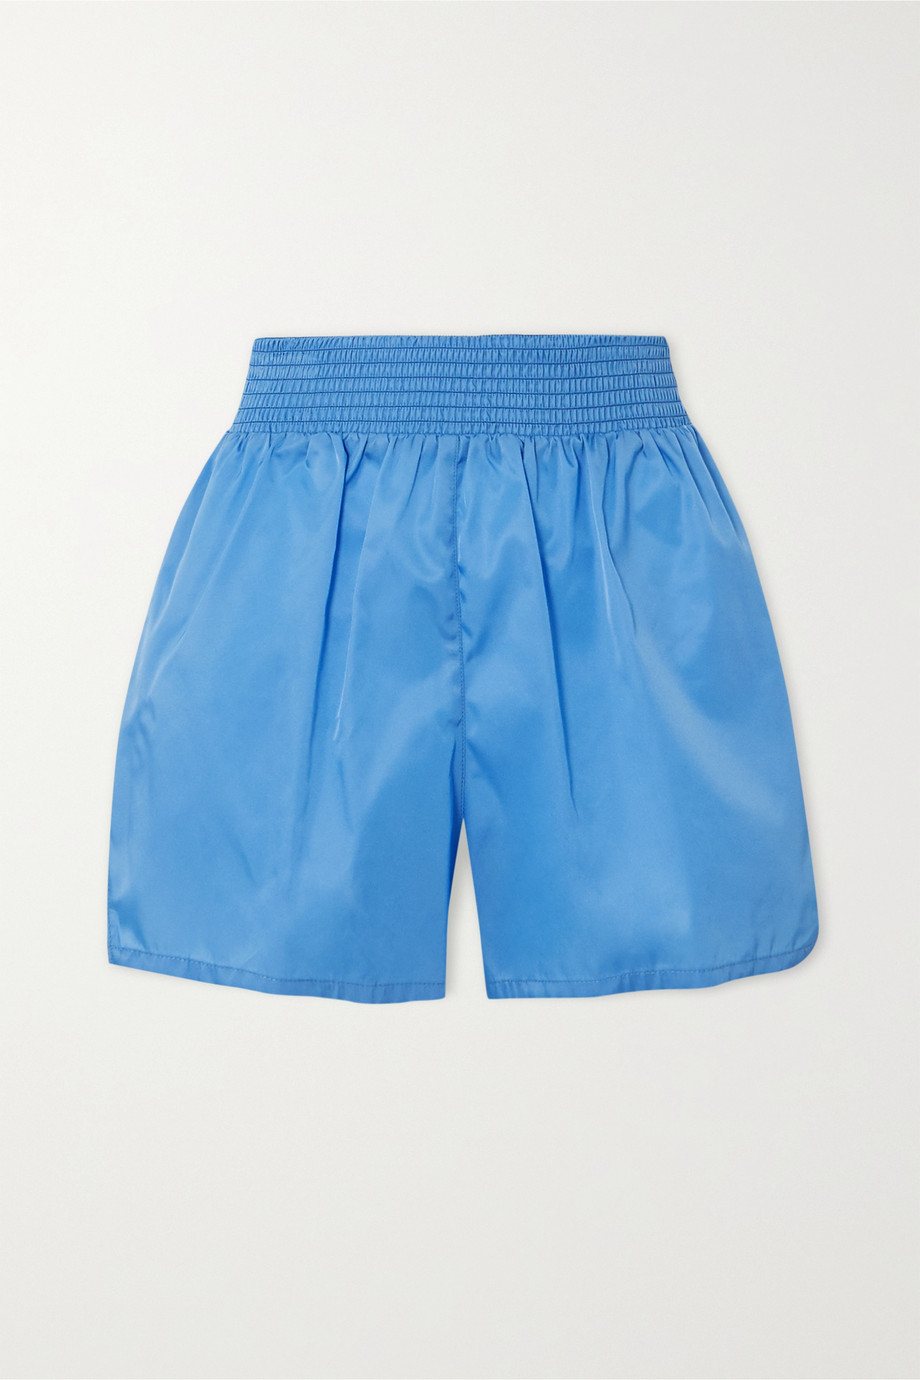 Prada Shorts aus Nylon mit Applikation